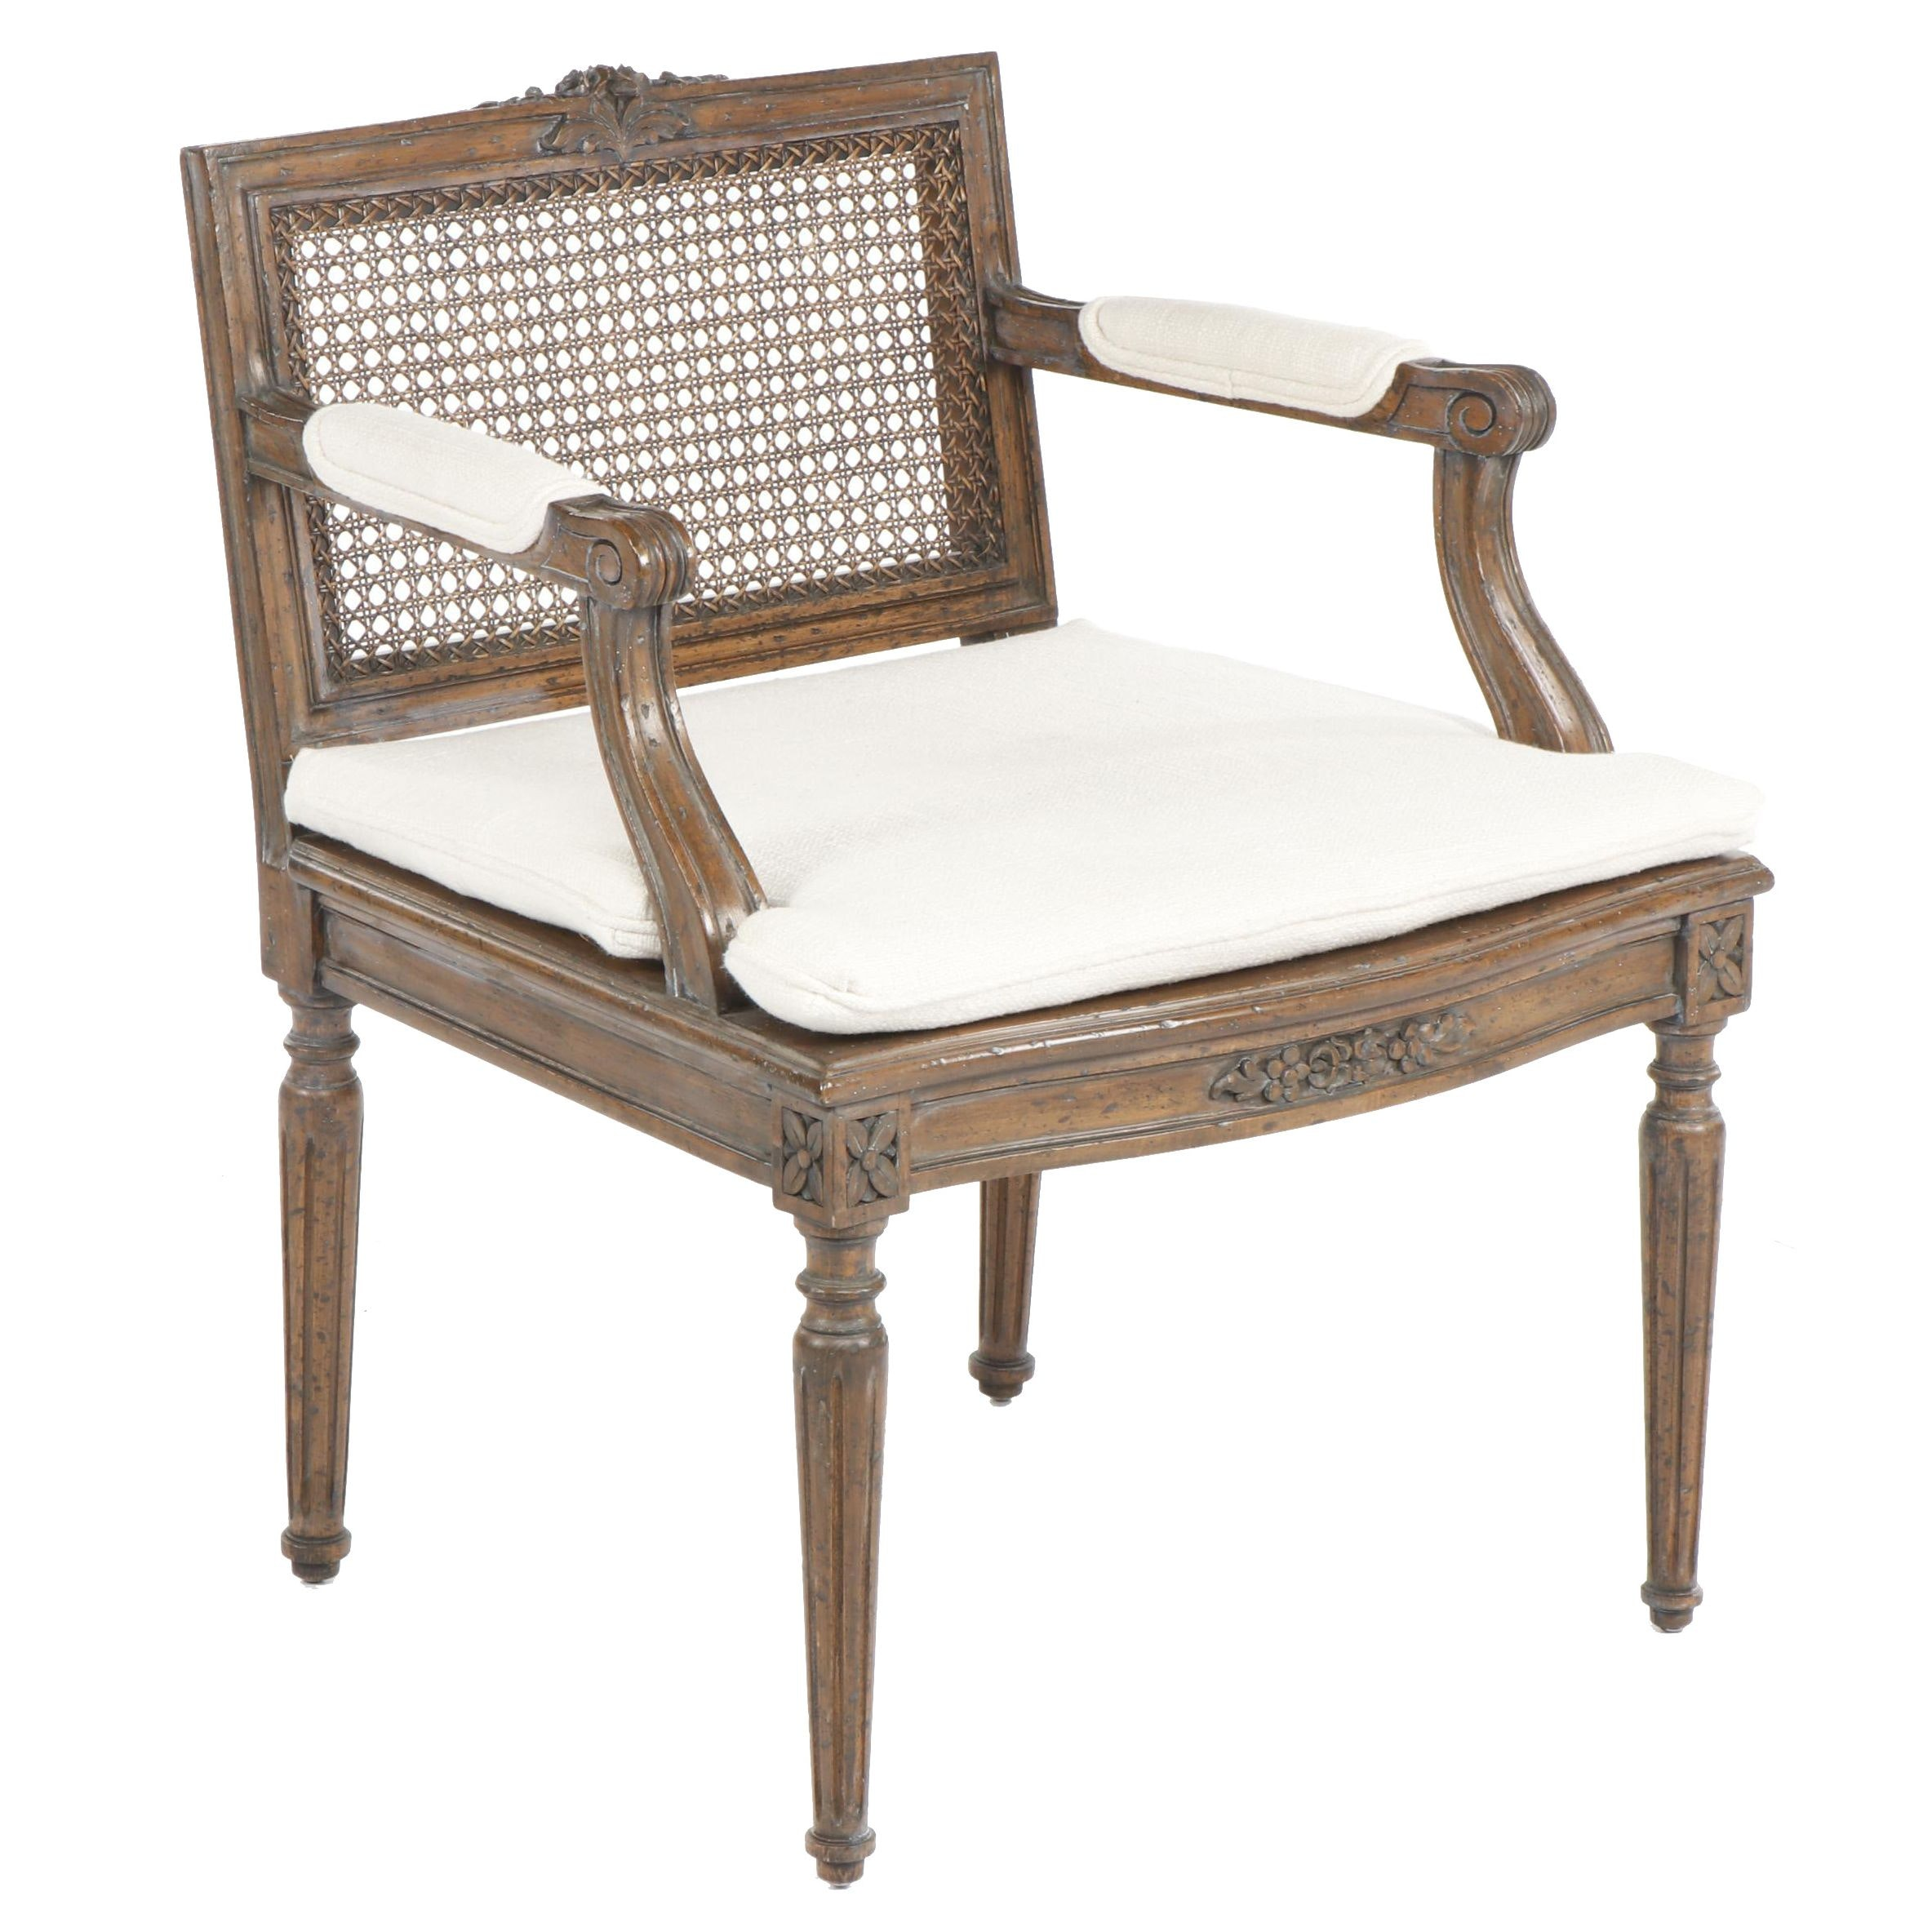 Louis XVI Style Armchair with Caned Back and Seat, Mid 20th Century